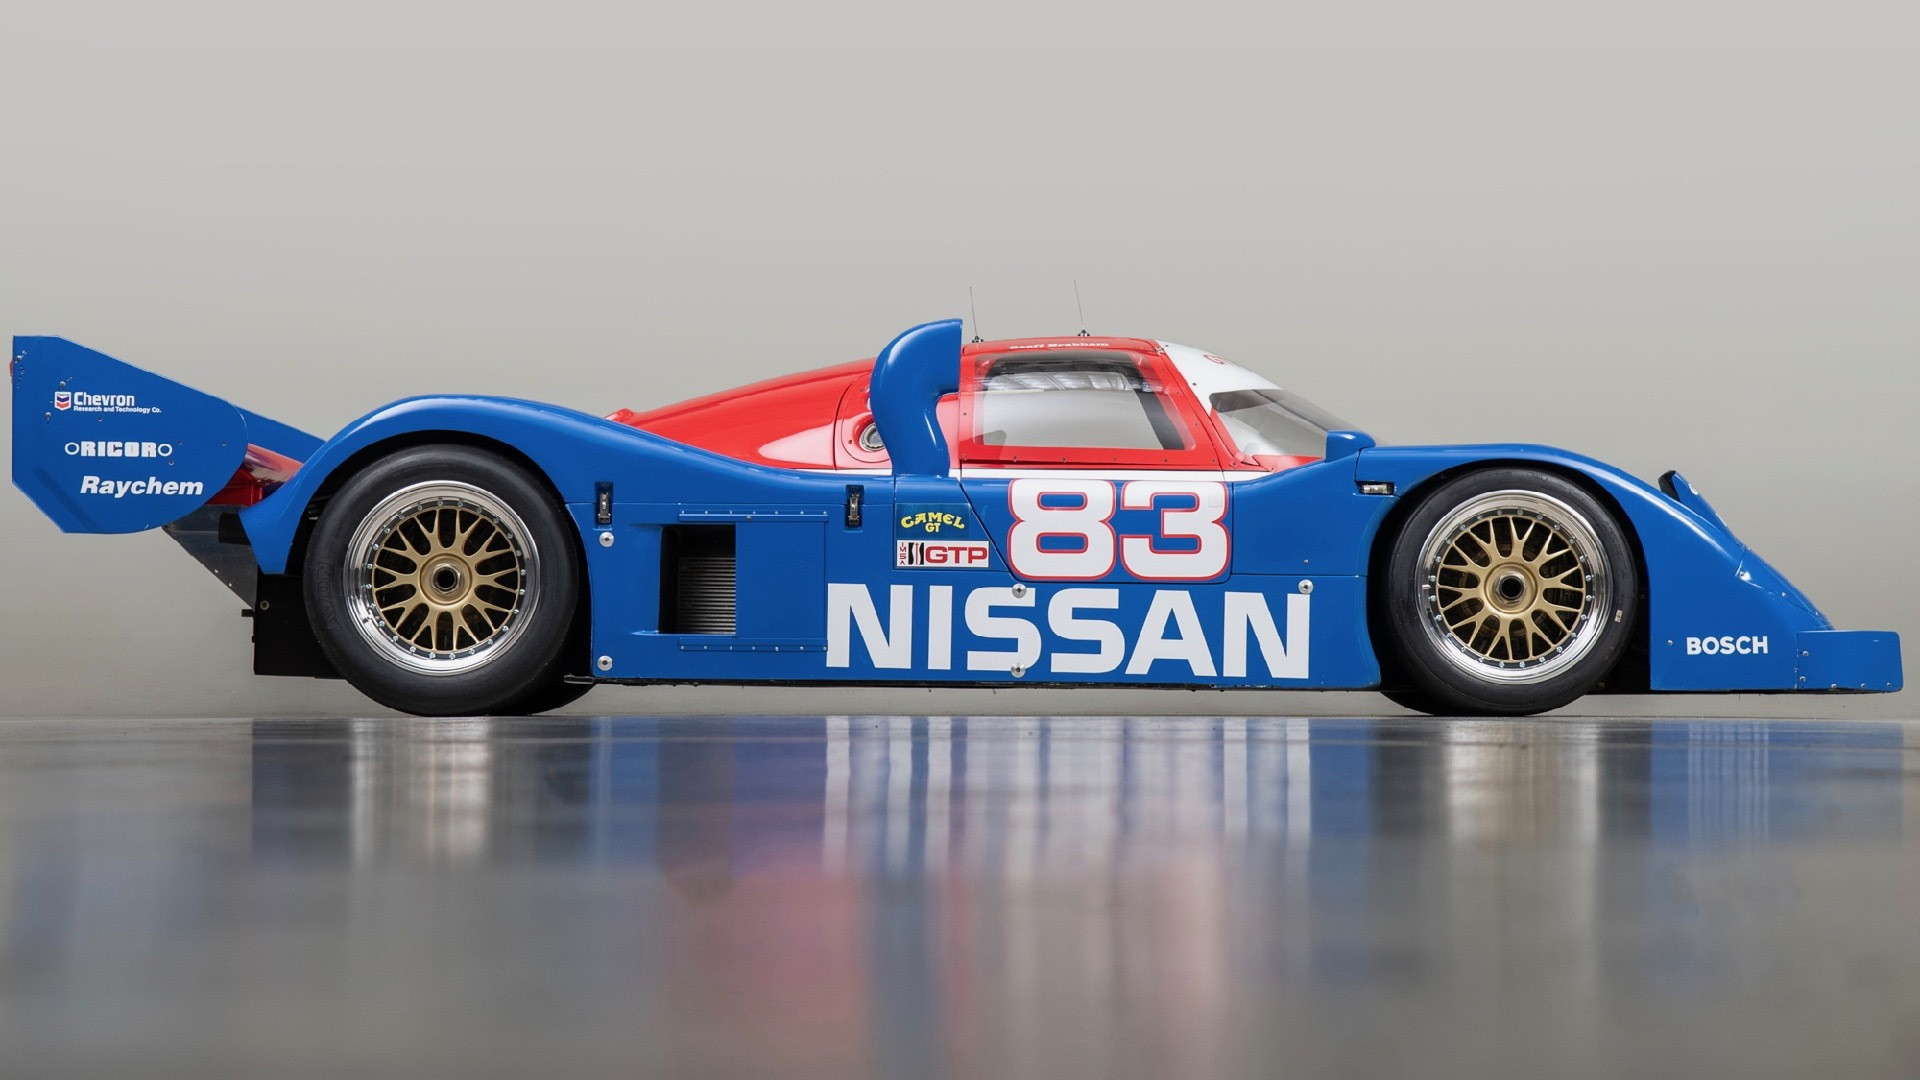 1990 Nissan NPT-90 (Photo by Canepa)